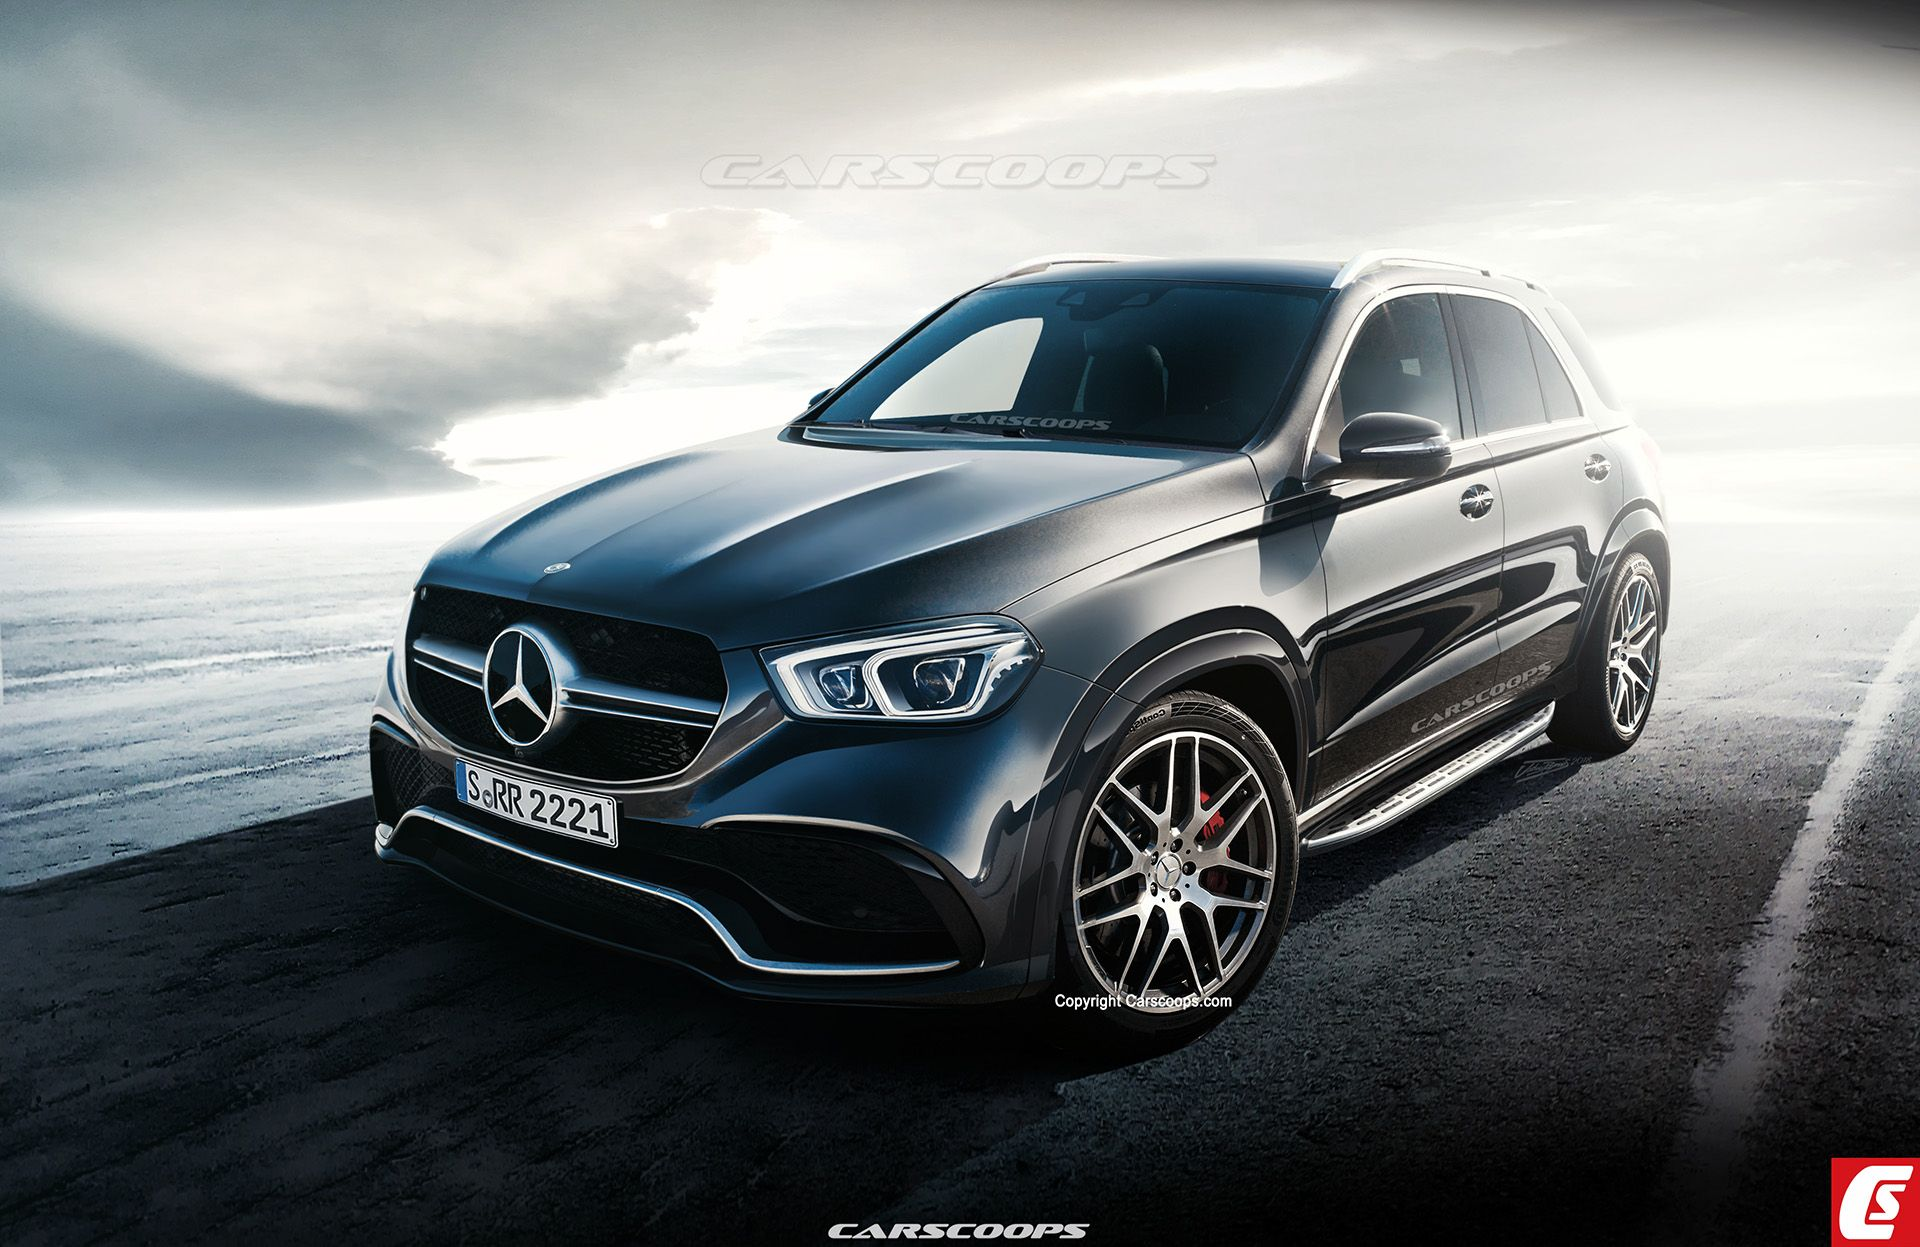 2019-Mercedes-Benz-GLE-AMG-CARSCOOPS